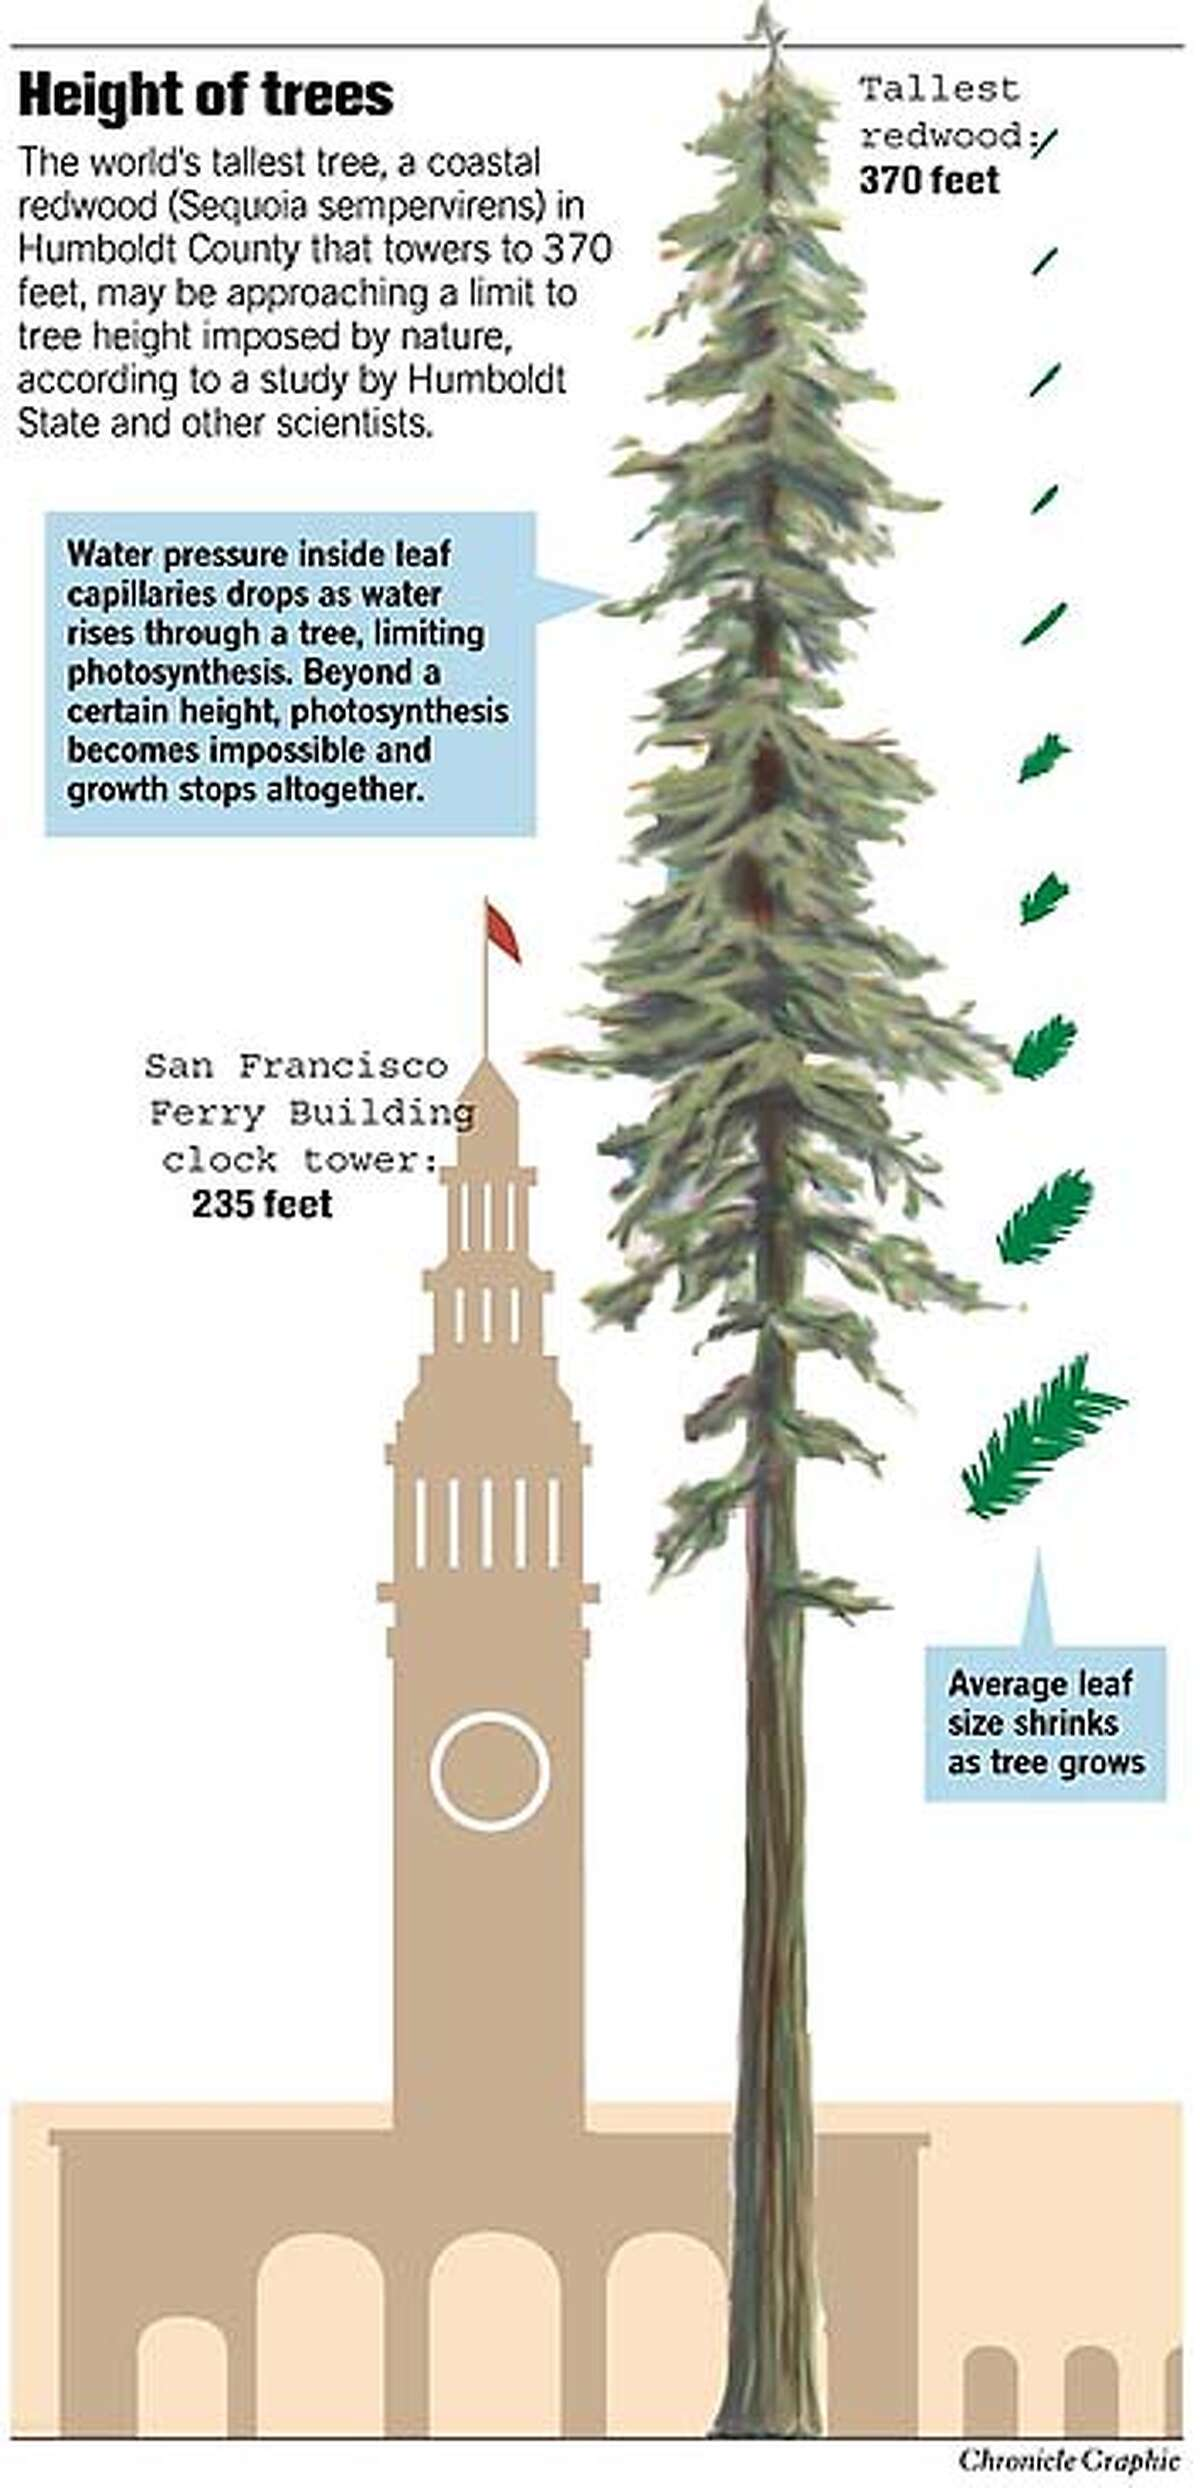 Height of Trees. Chronicle Graphic